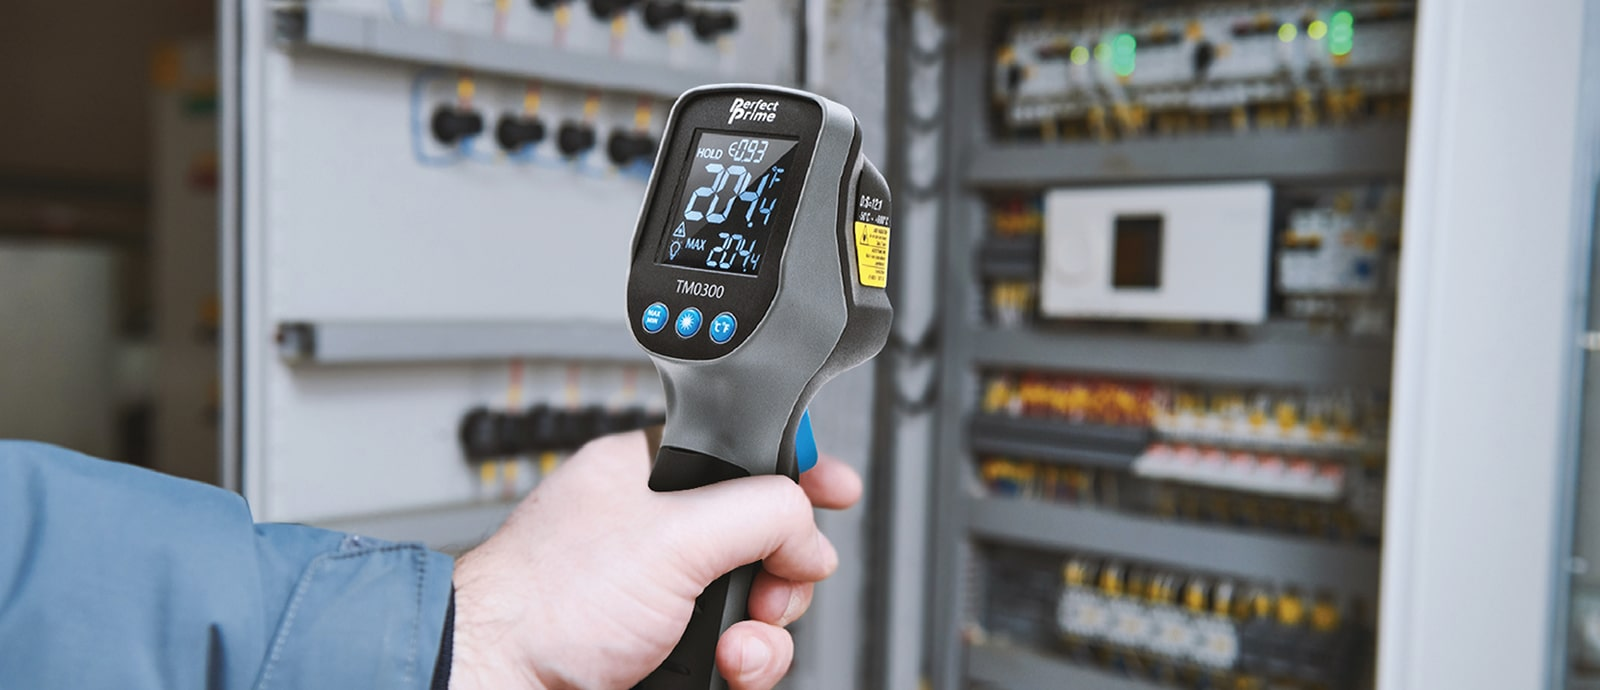 A hand holding a TM0300 checking mechanic system